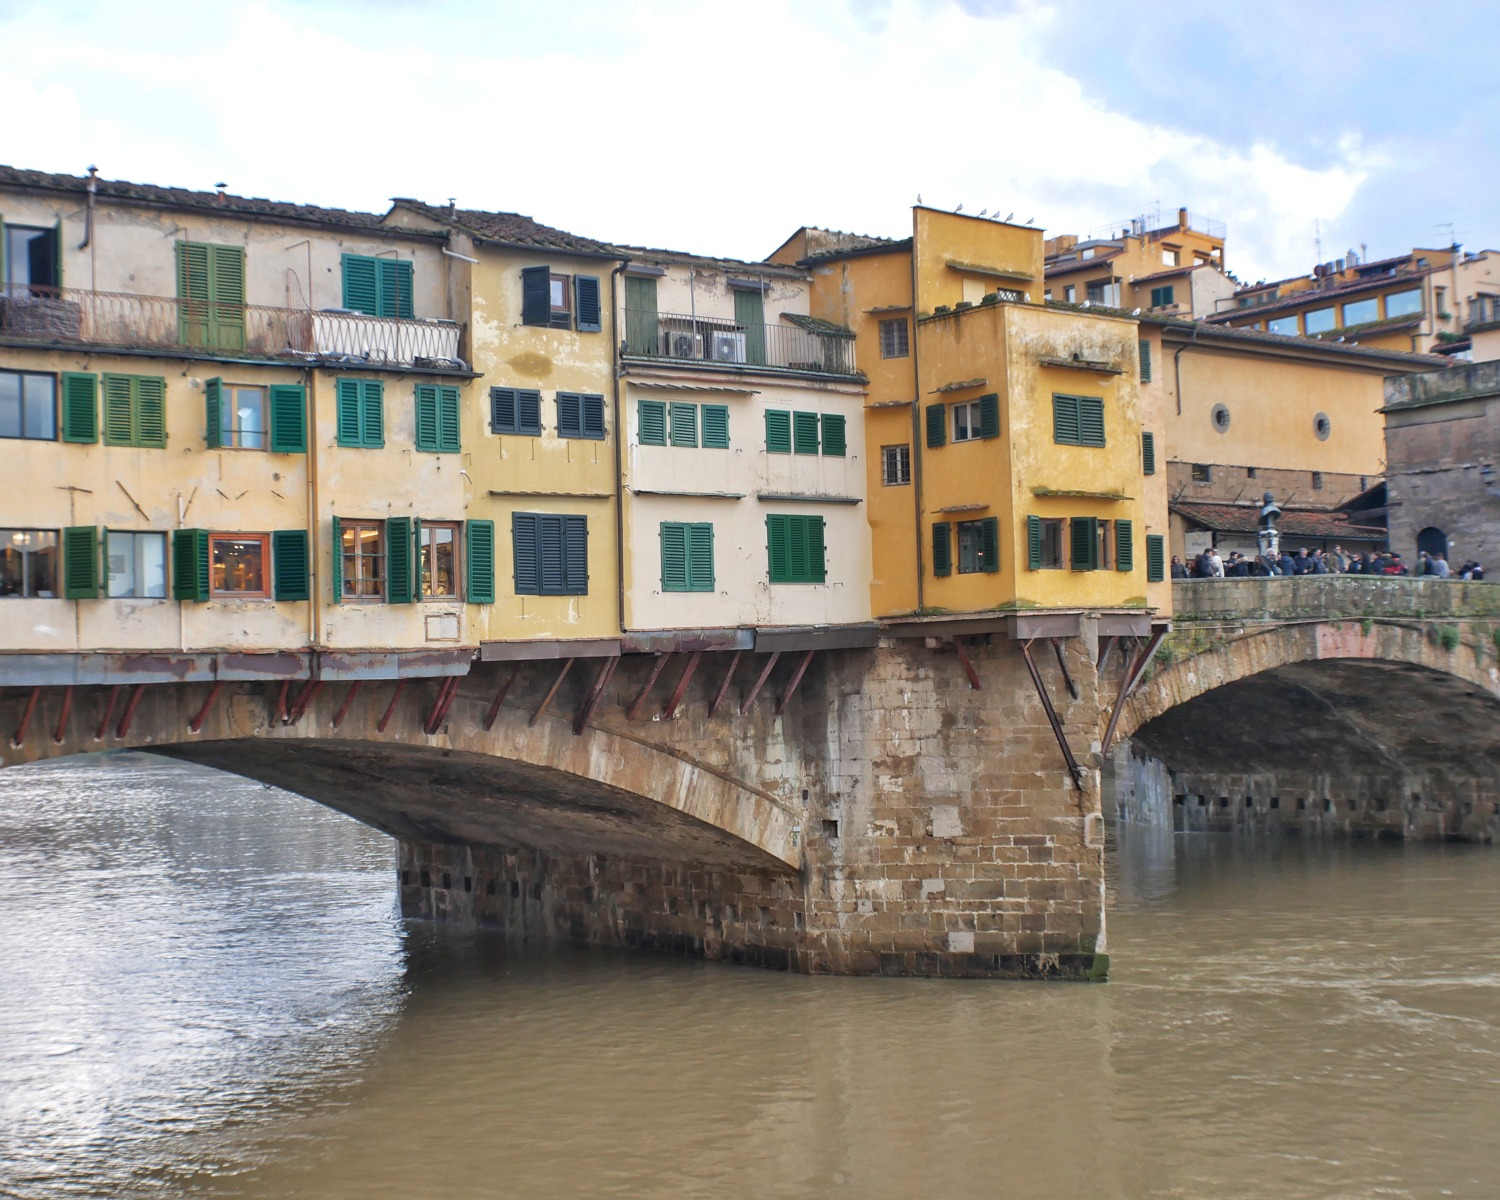 Top things to see in Florence - Ponte Vecchio in Florence, Italy Photo Heatheronhertravels.com